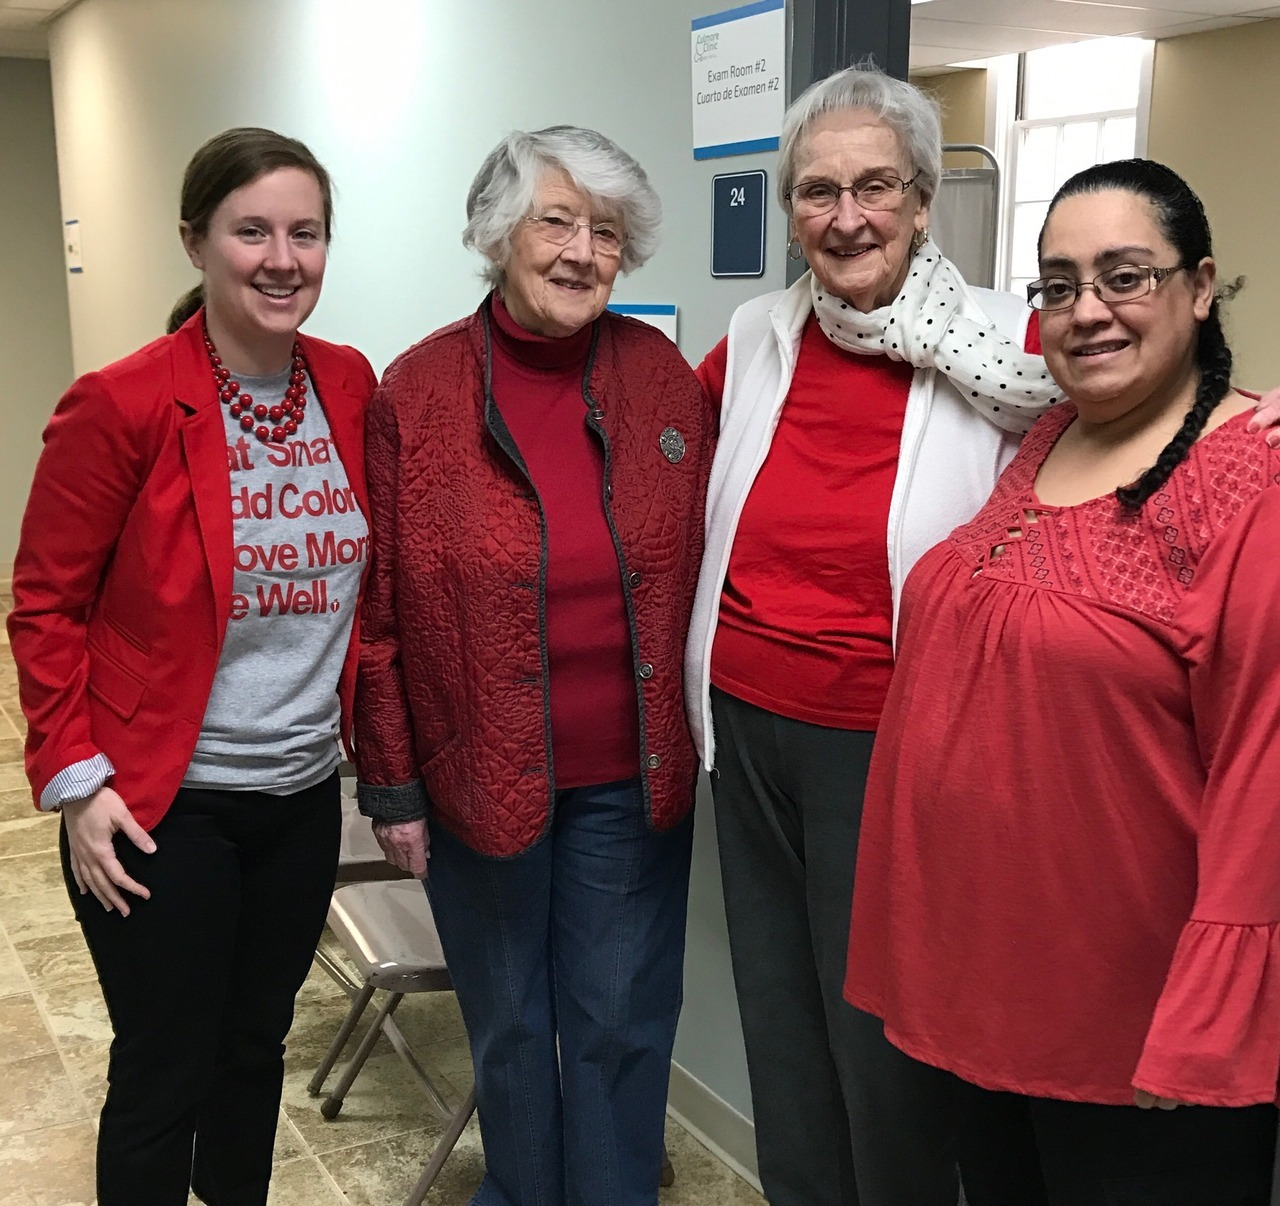 Today is #WearRedDay to raise awareness for women's heart health. We at Culmore Clinic work hard to treat and prevent heart disease for all of our patients and so are proud to participate.